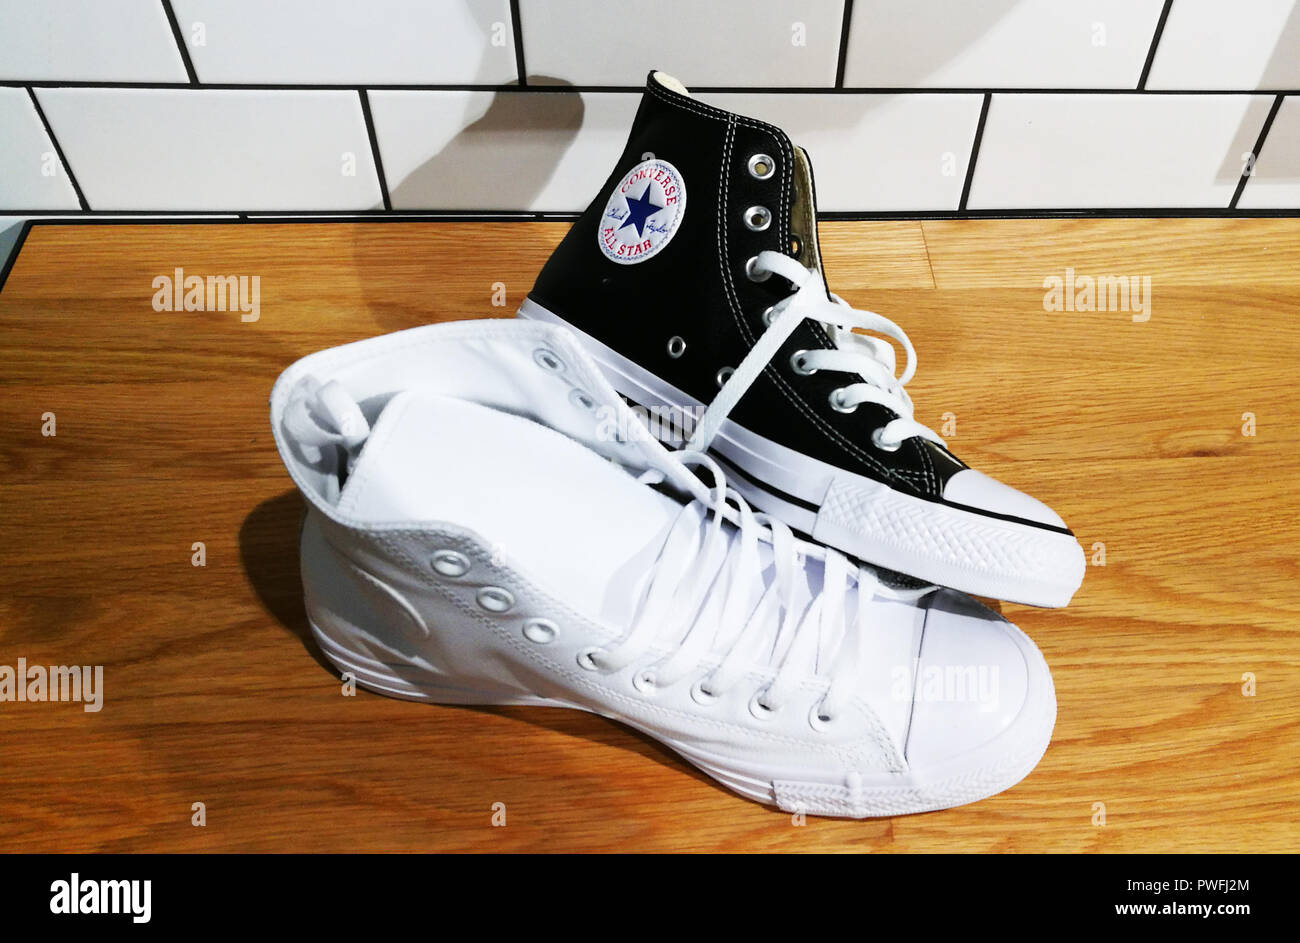 5e78b860e9b5b Converse All Stars Stockfotos   Converse All Stars Bilder - Alamy